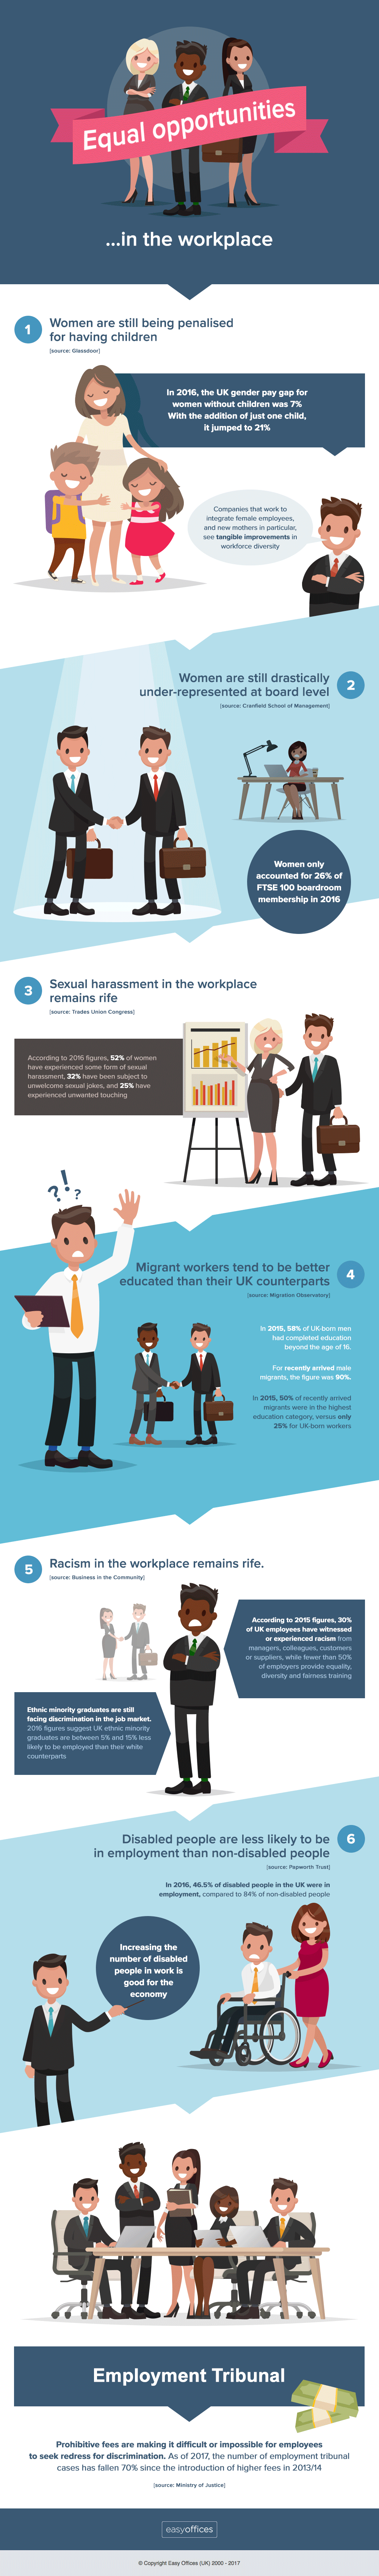 equal opportunities in the workplace infographic